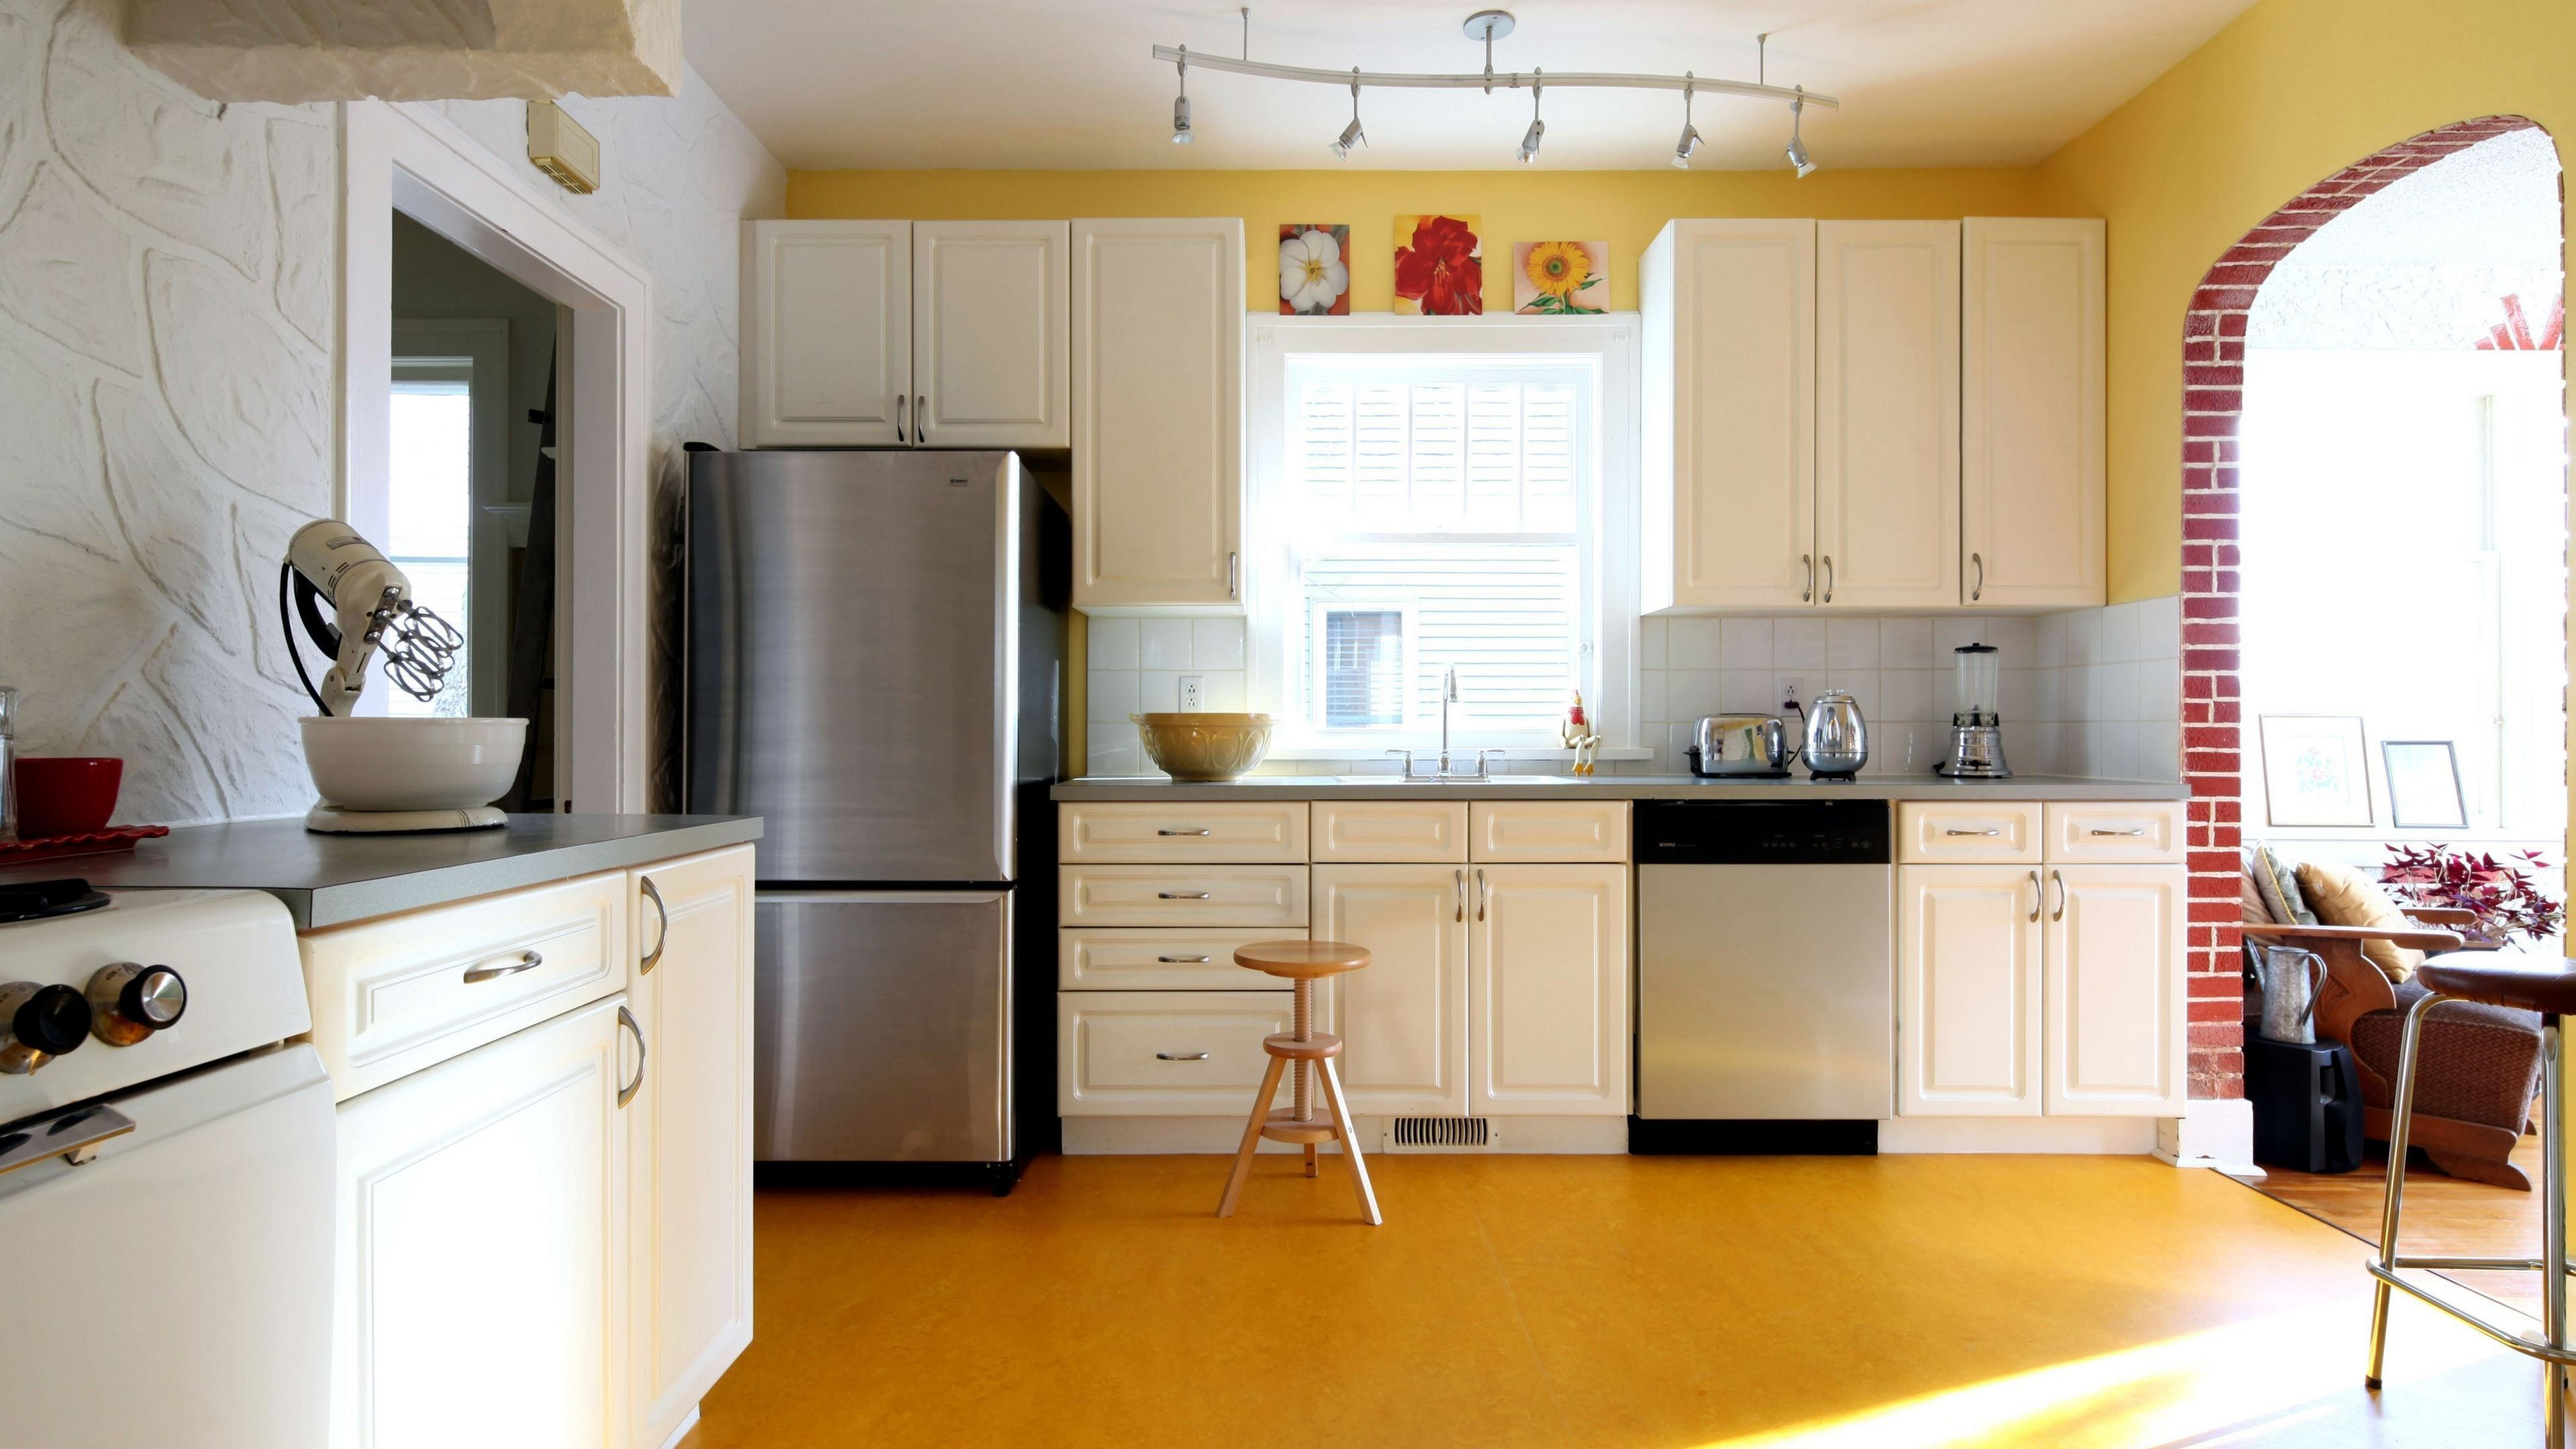 Modular Kitchen Images Awesome Shaped Top Simple Yellow ...